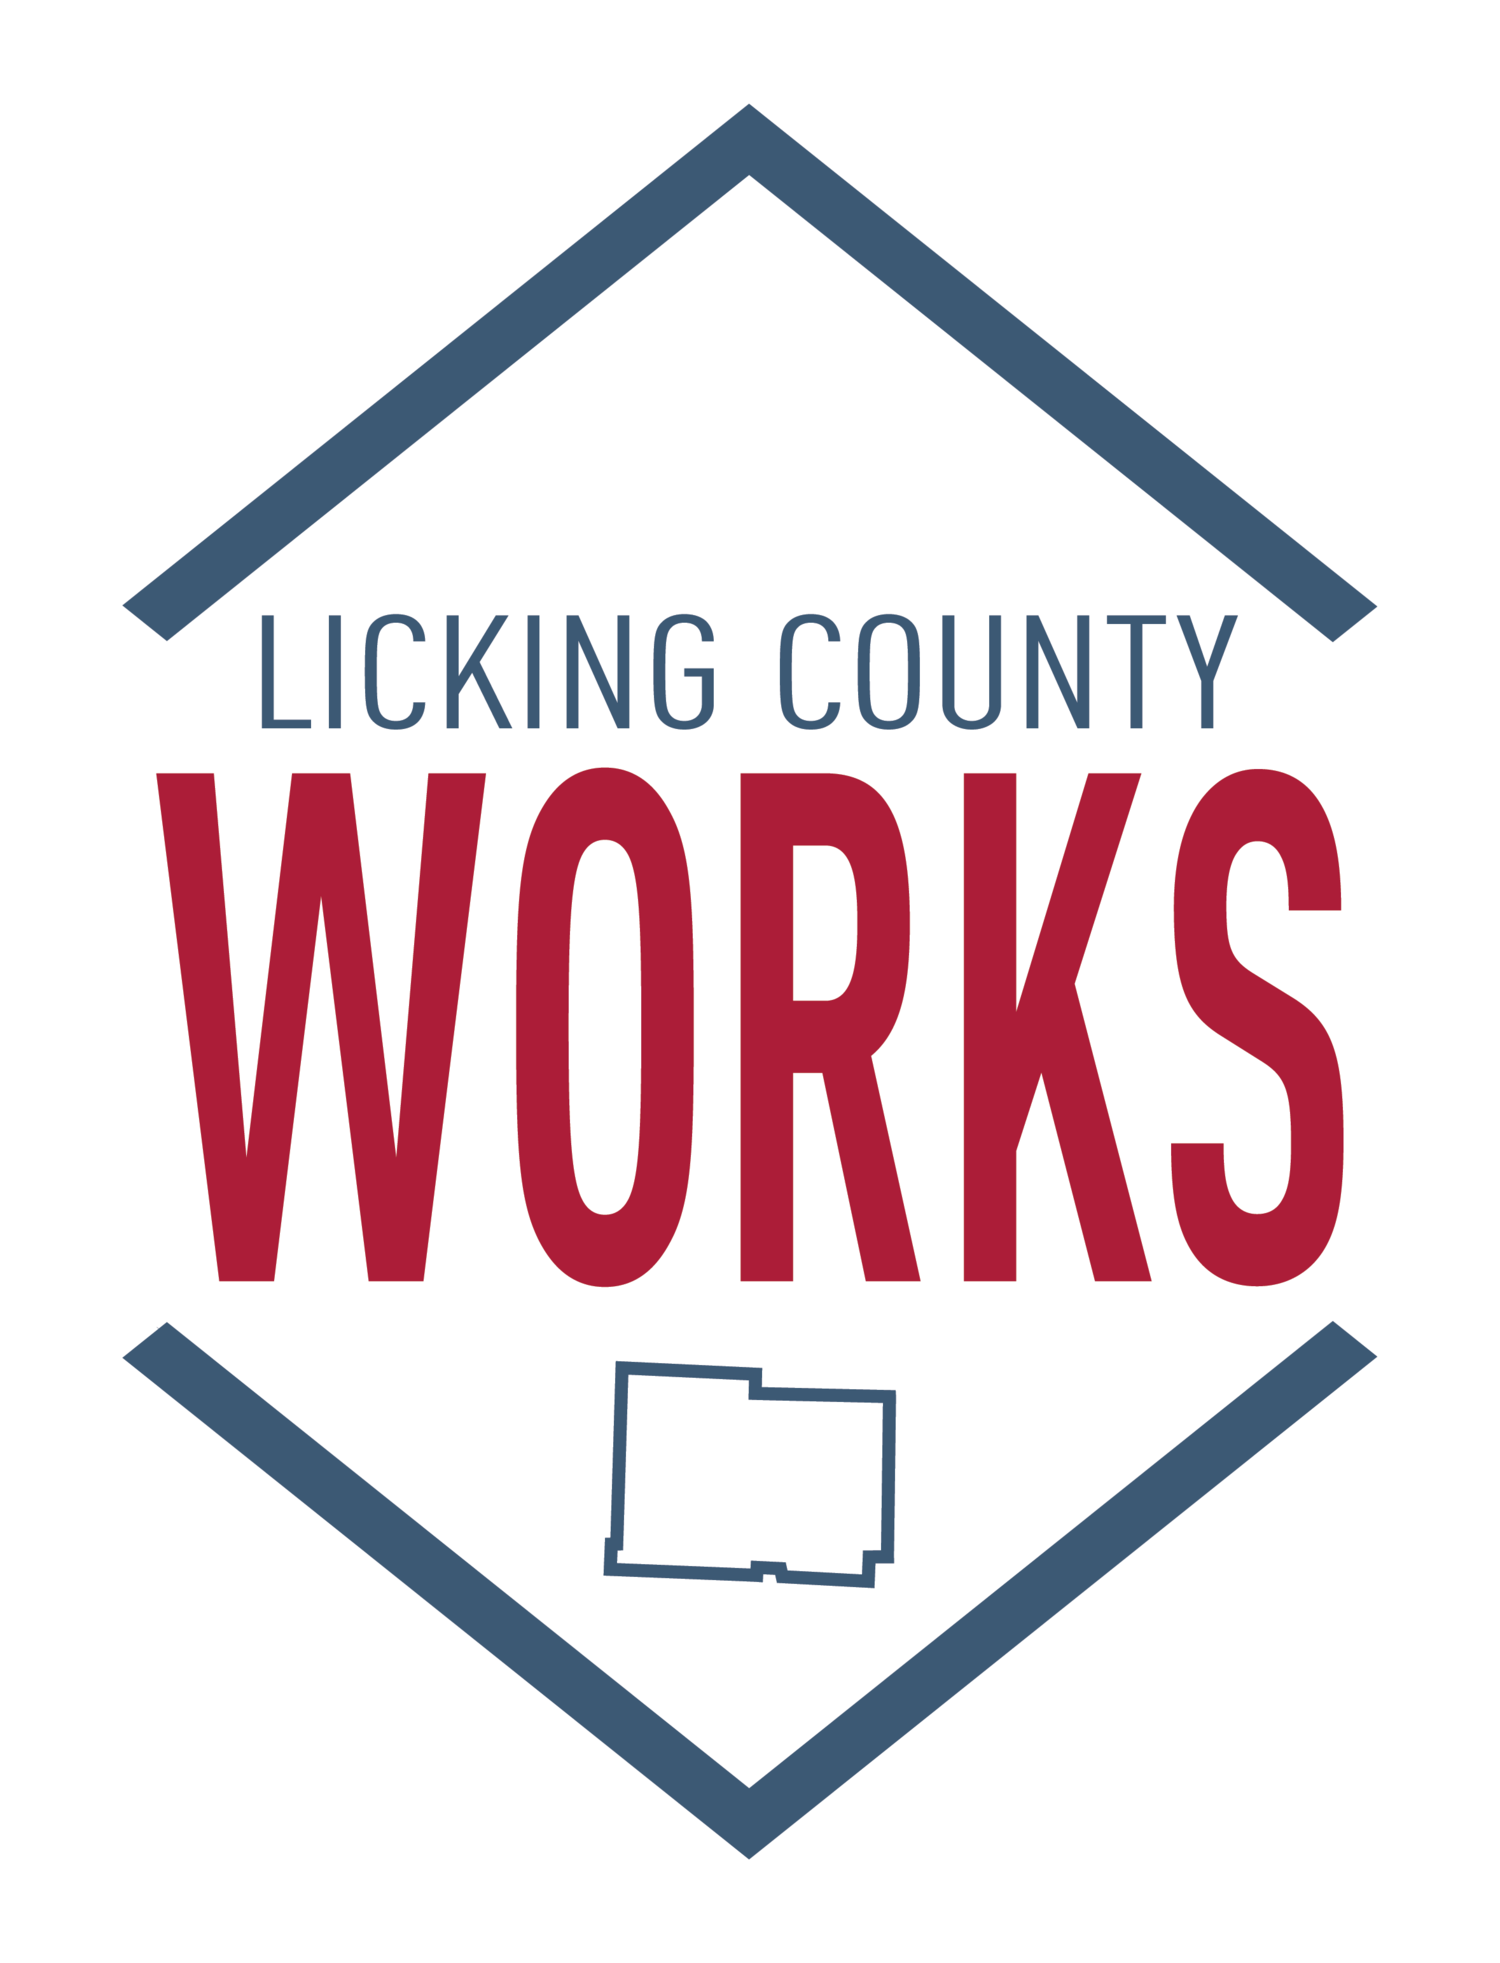 Licking County Works